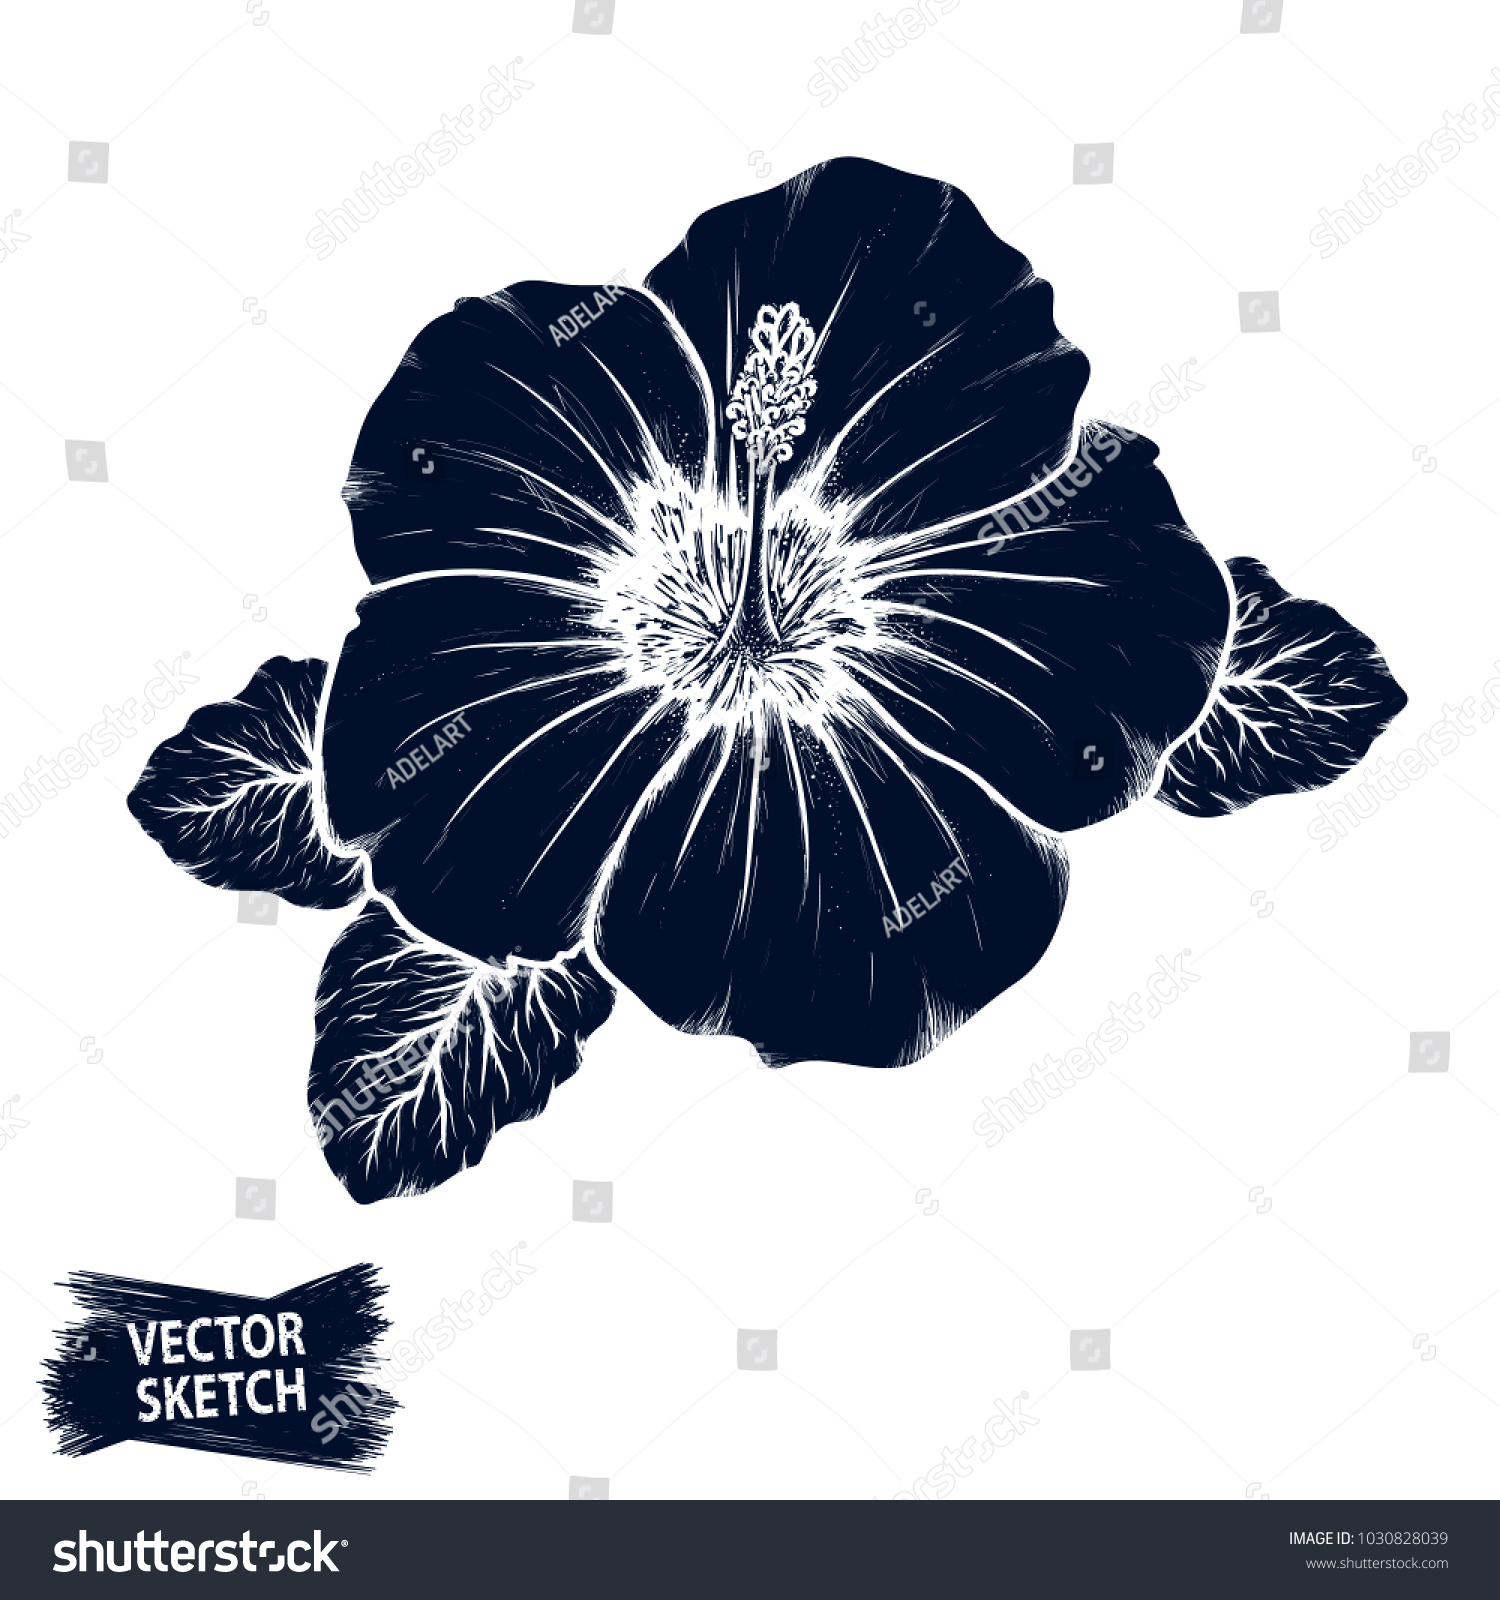 Hibiscus flower sketch tropical plant doodle stock vector 2018 hibiscus flower sketch tropical plant doodle floral scrawl scribble vector jungle nature izmirmasajfo